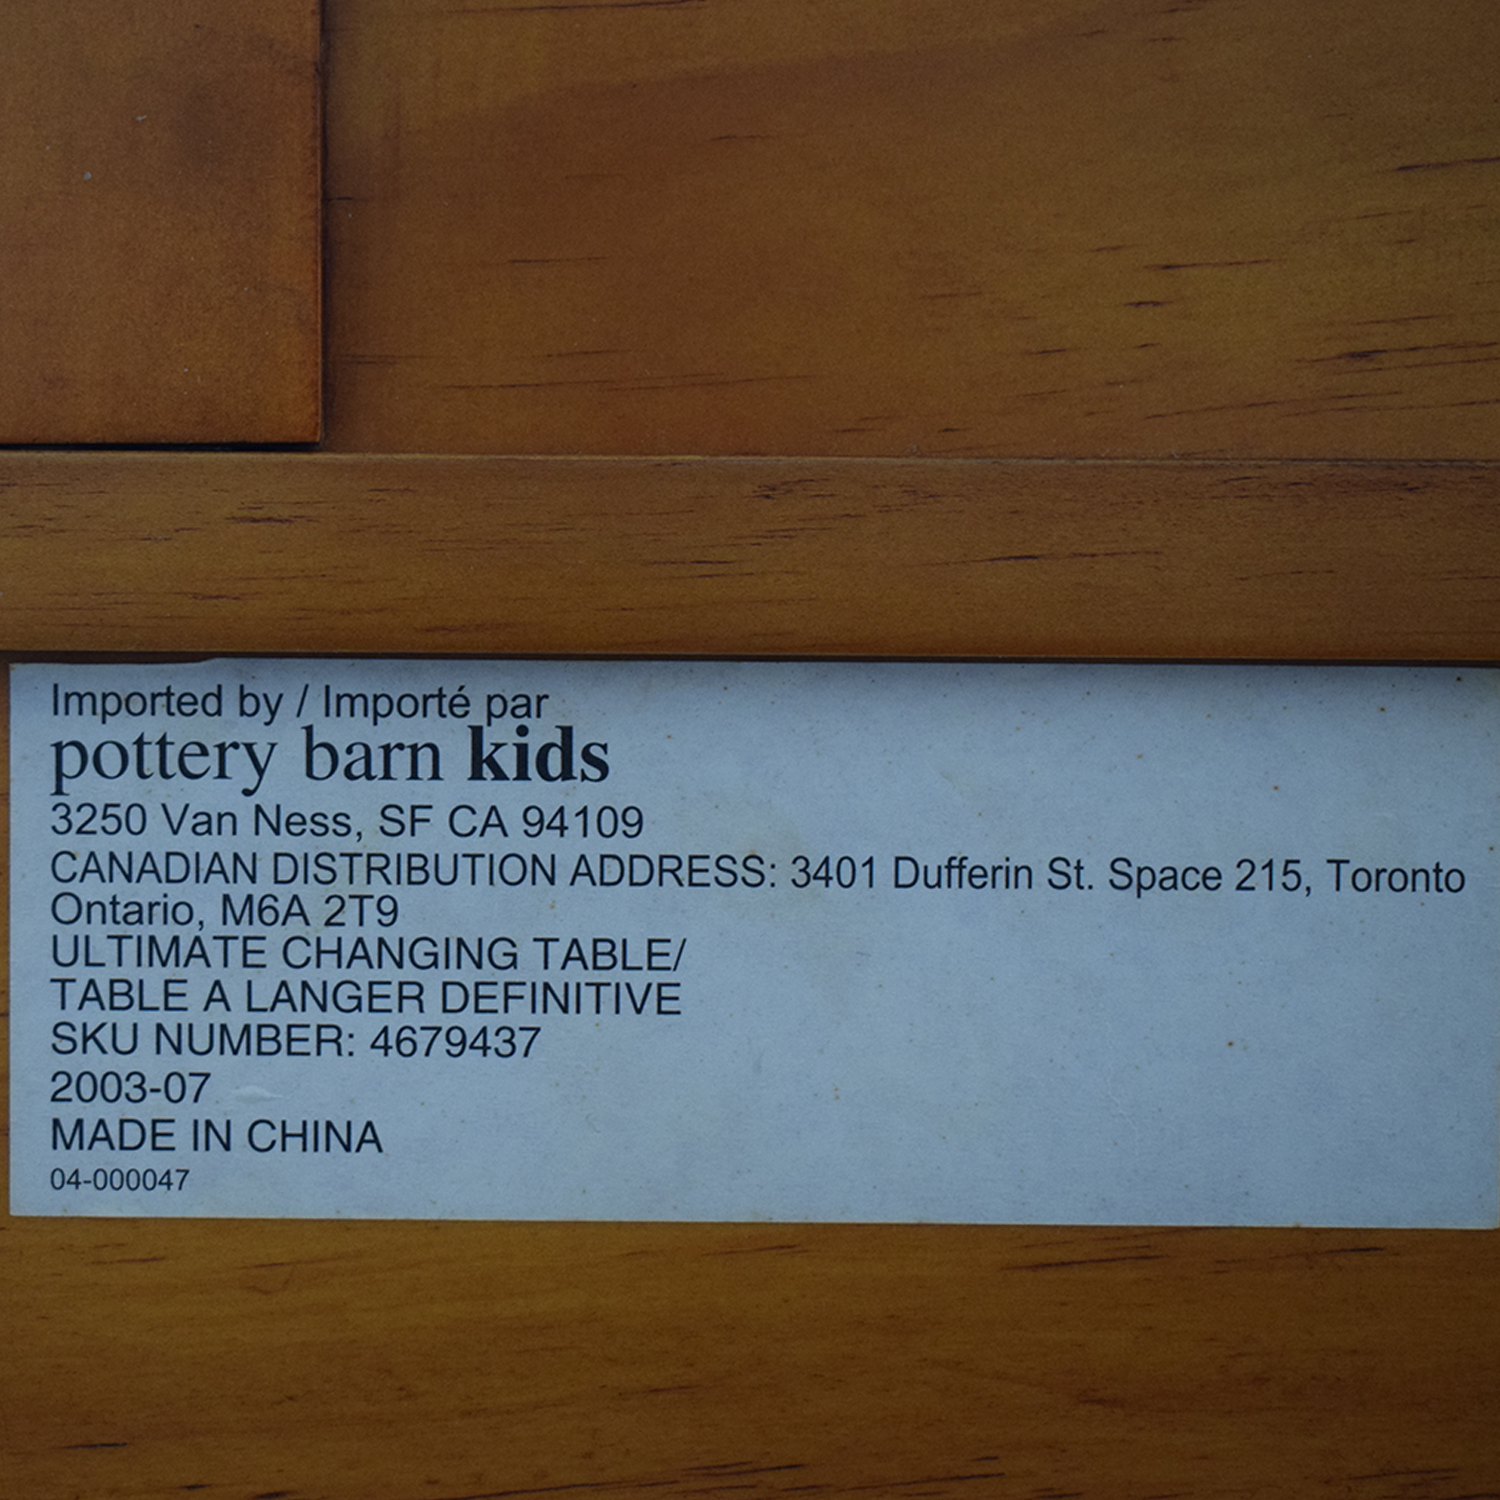 Pottery Barn Kids Ultimate Changing Table sale